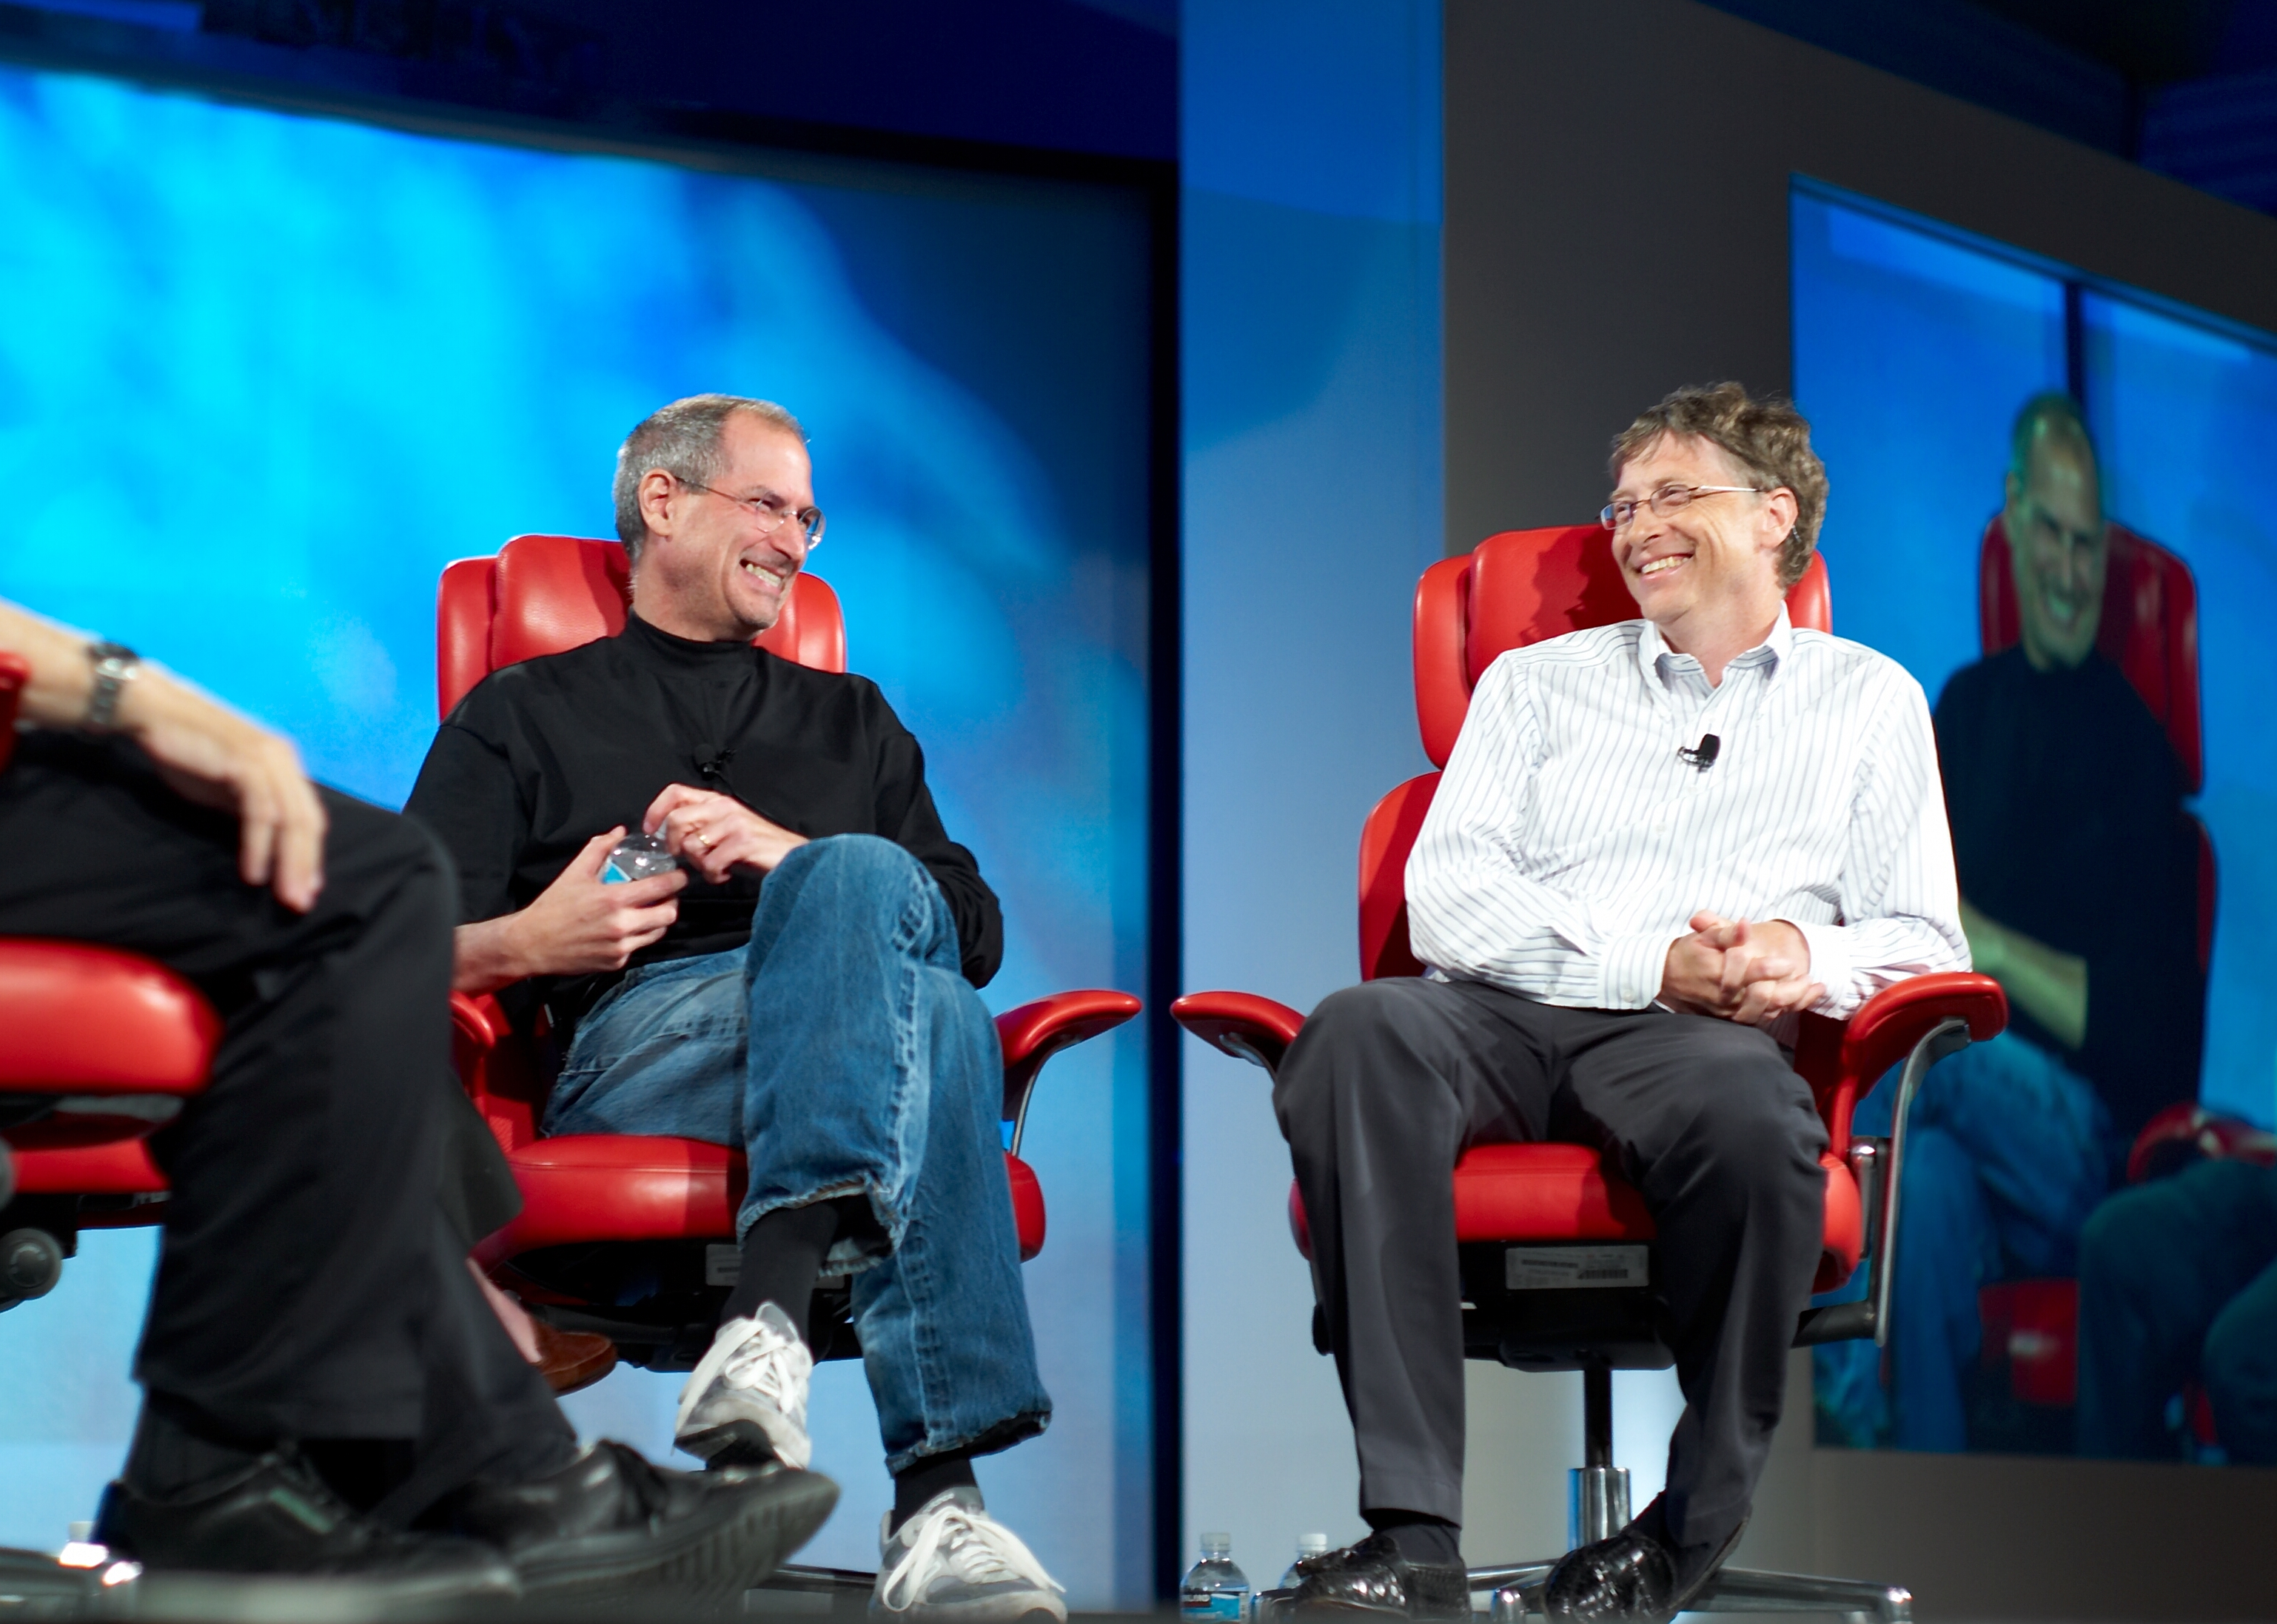 By Joi Ito from Inbamura, Japan - Steve Jobs and Bill Gates on Flickr, CC BY 2.0, Link